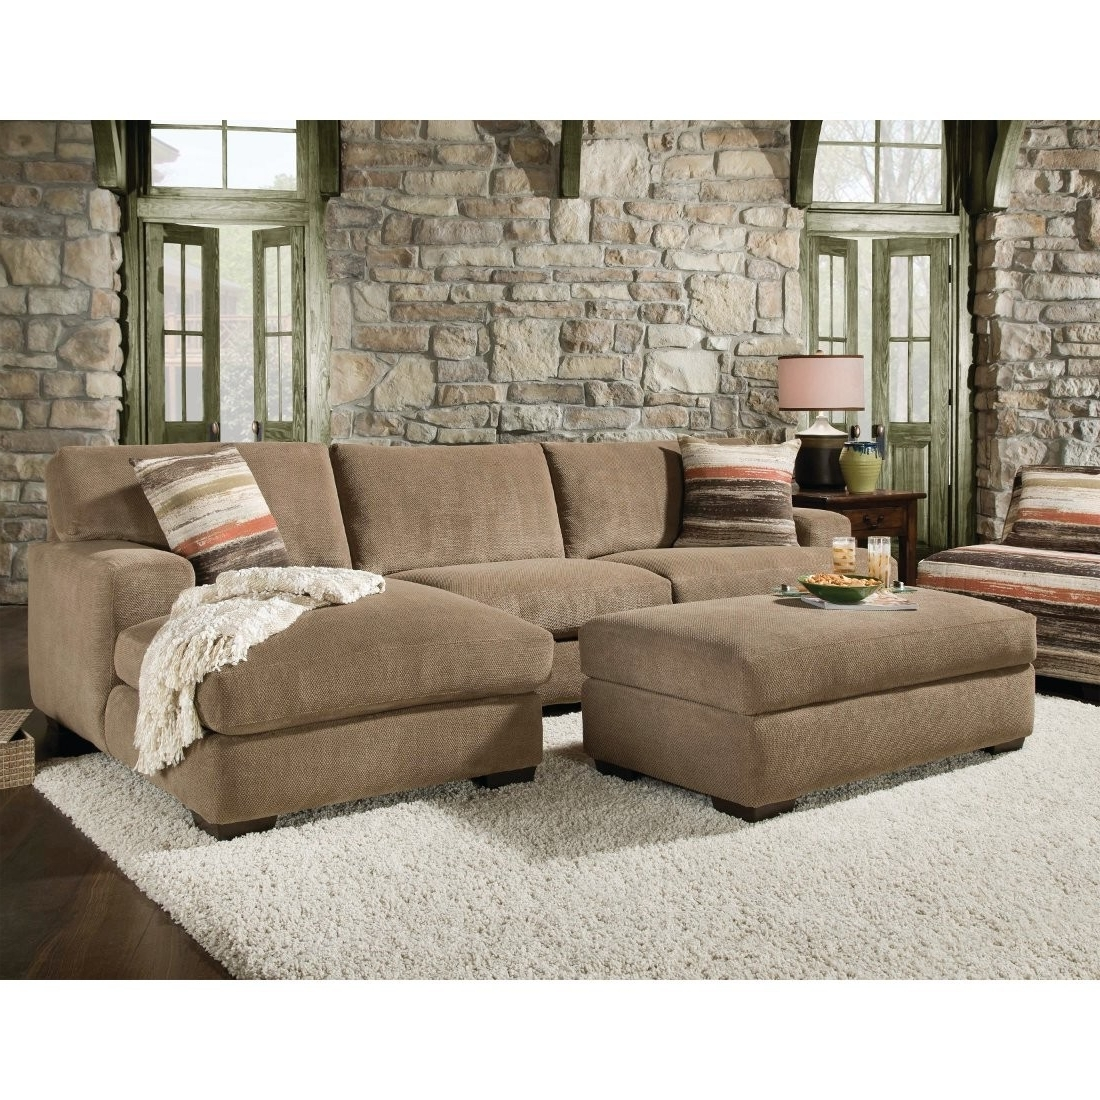 Small Couches With Chaise With Famous Sofa ~ Luxury Leather Sofa With Chaise Lounge Cute Small Sectional (View 12 of 15)